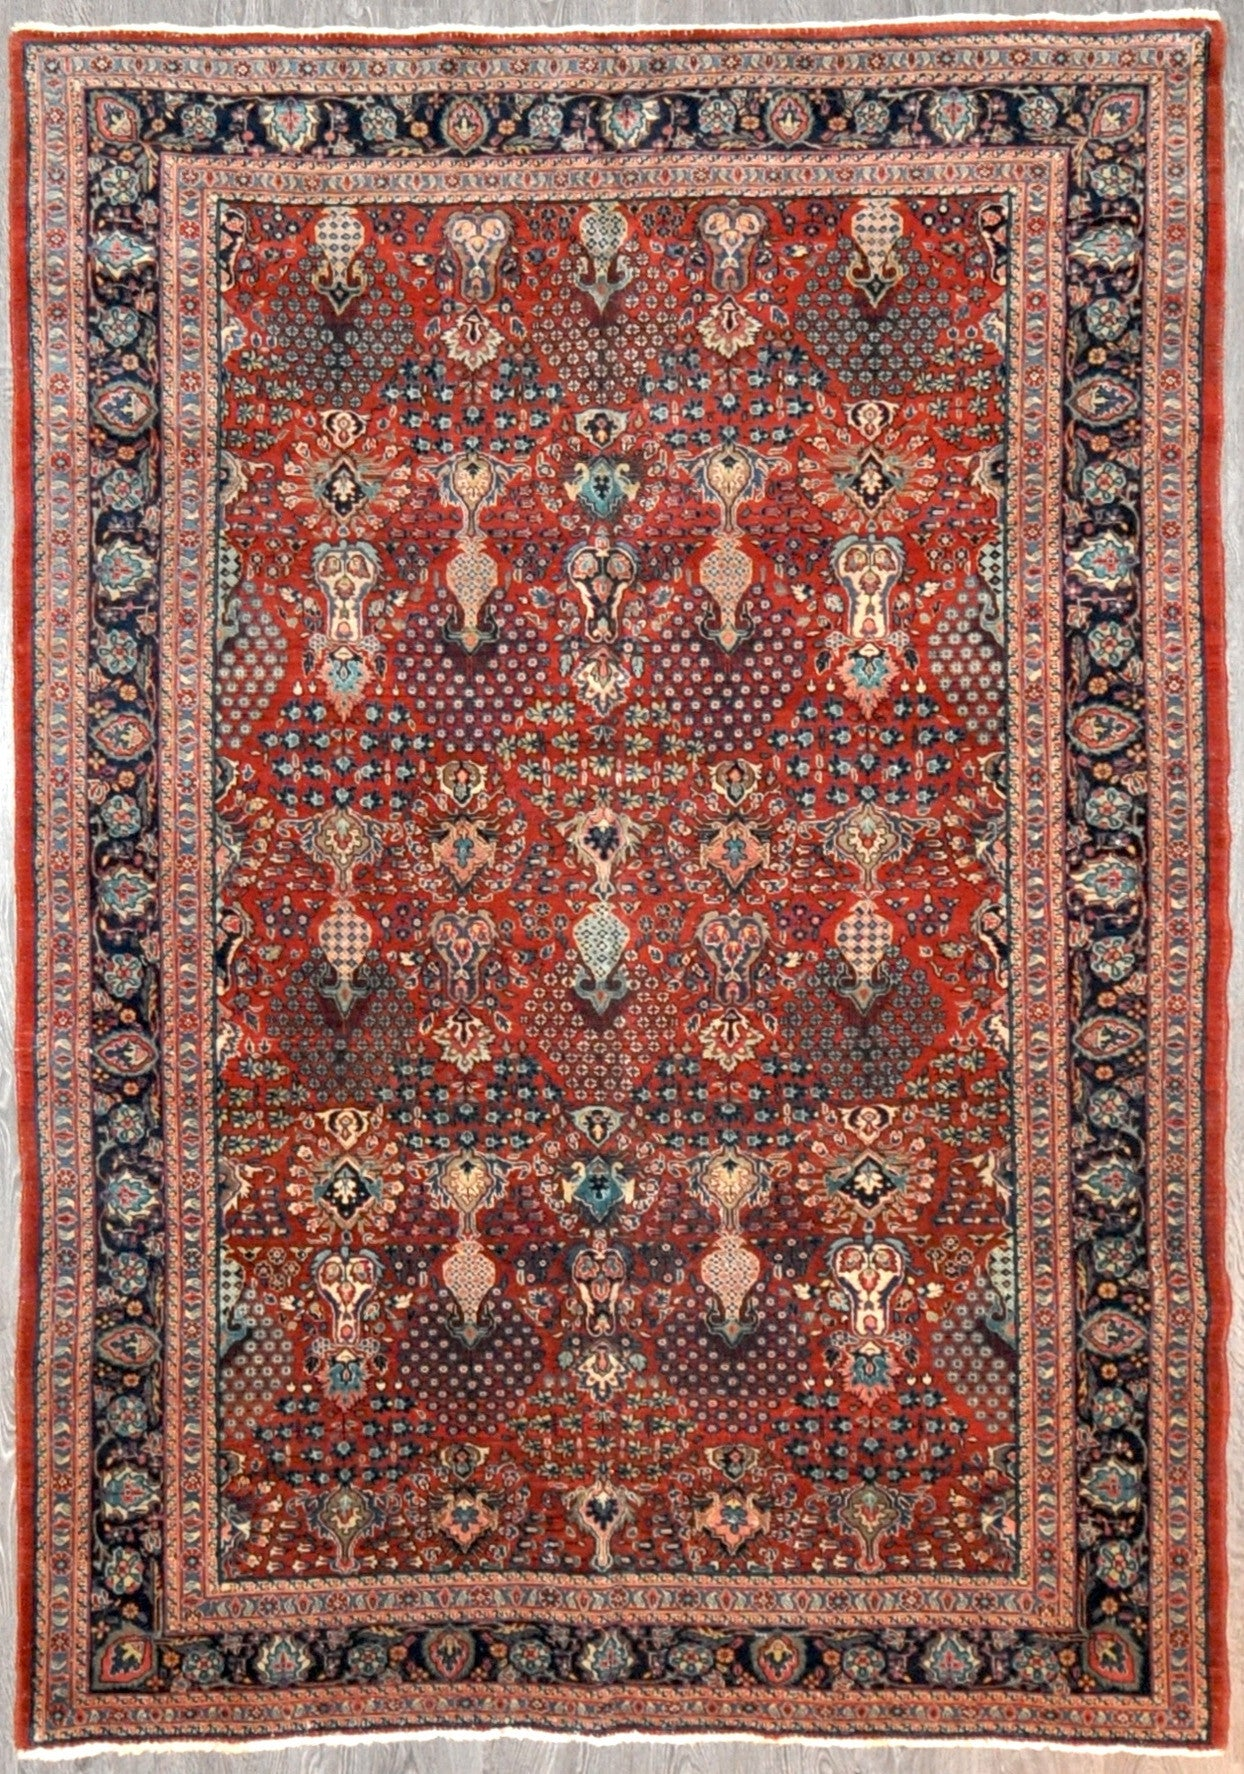 6.4x9.0 antique Persian sarouk #46269